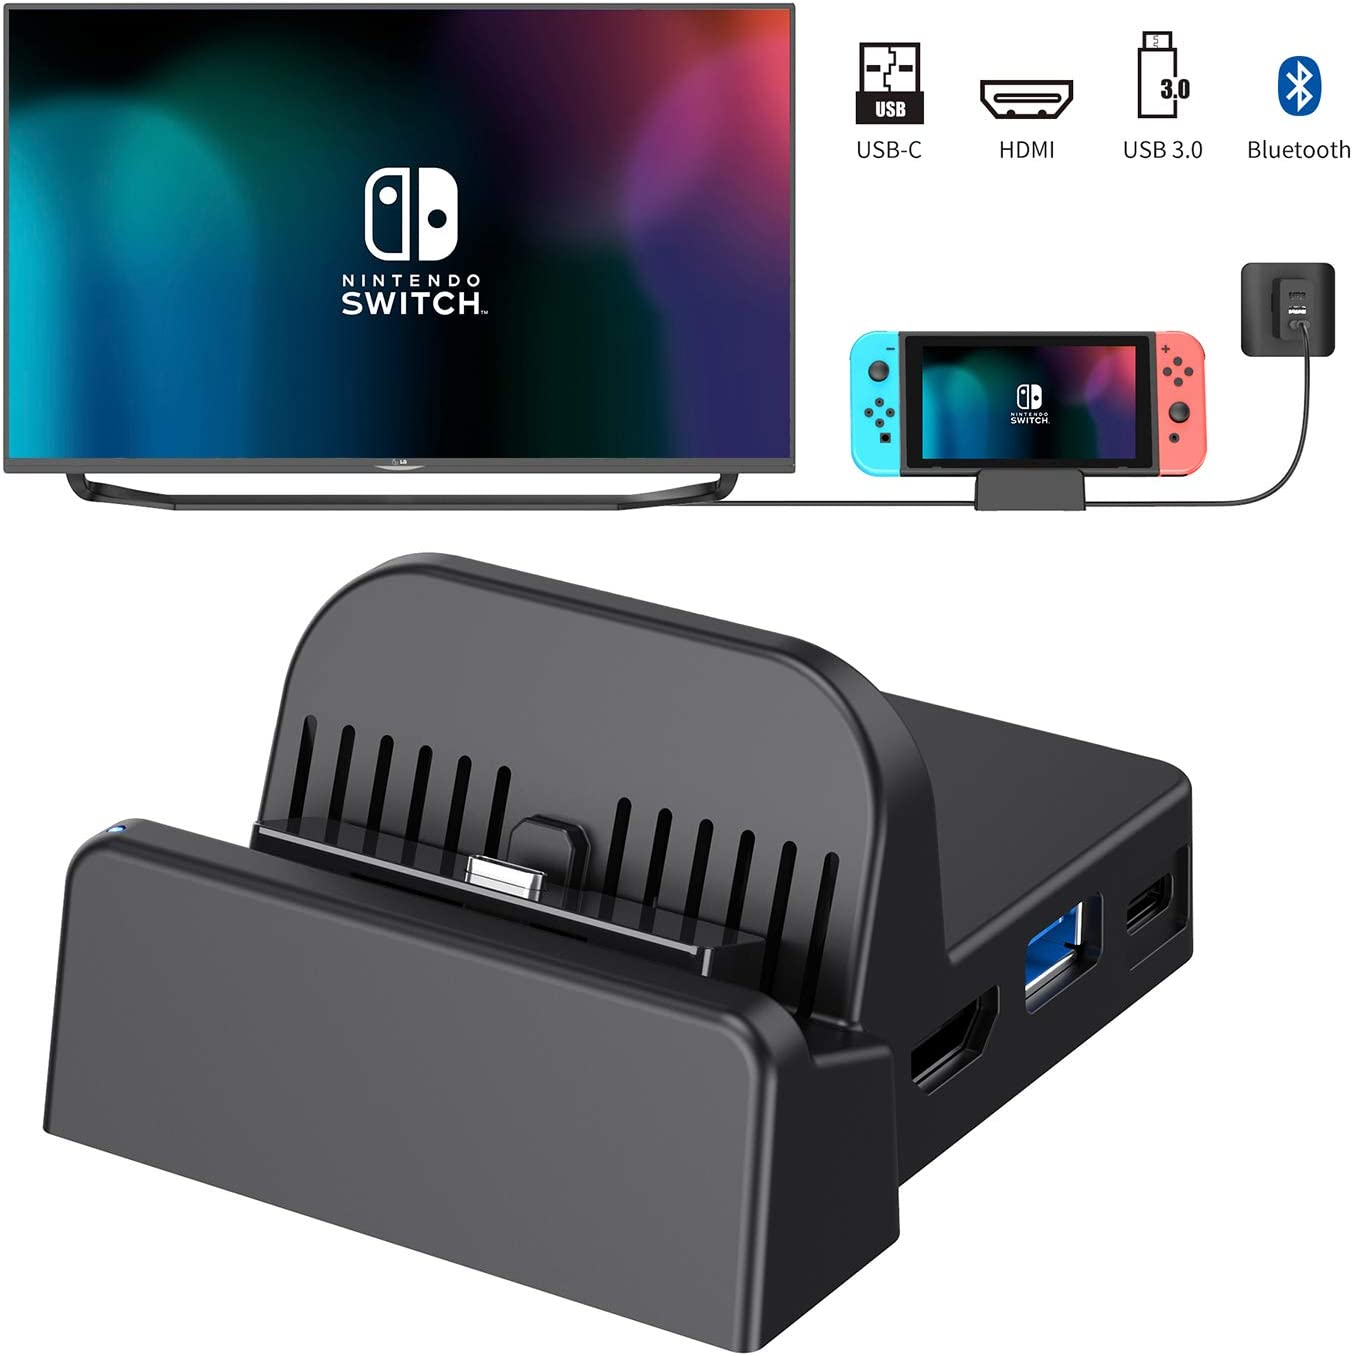 OLCLSS Nintendo Switch Dock with Bluetooth Adjustable Switch Docking Station with Type-C Input Interface Mini HDMI Video Conversion Dock Base with LED Indicator for Nintendo Switch Host: Amazon.es: Electrónica